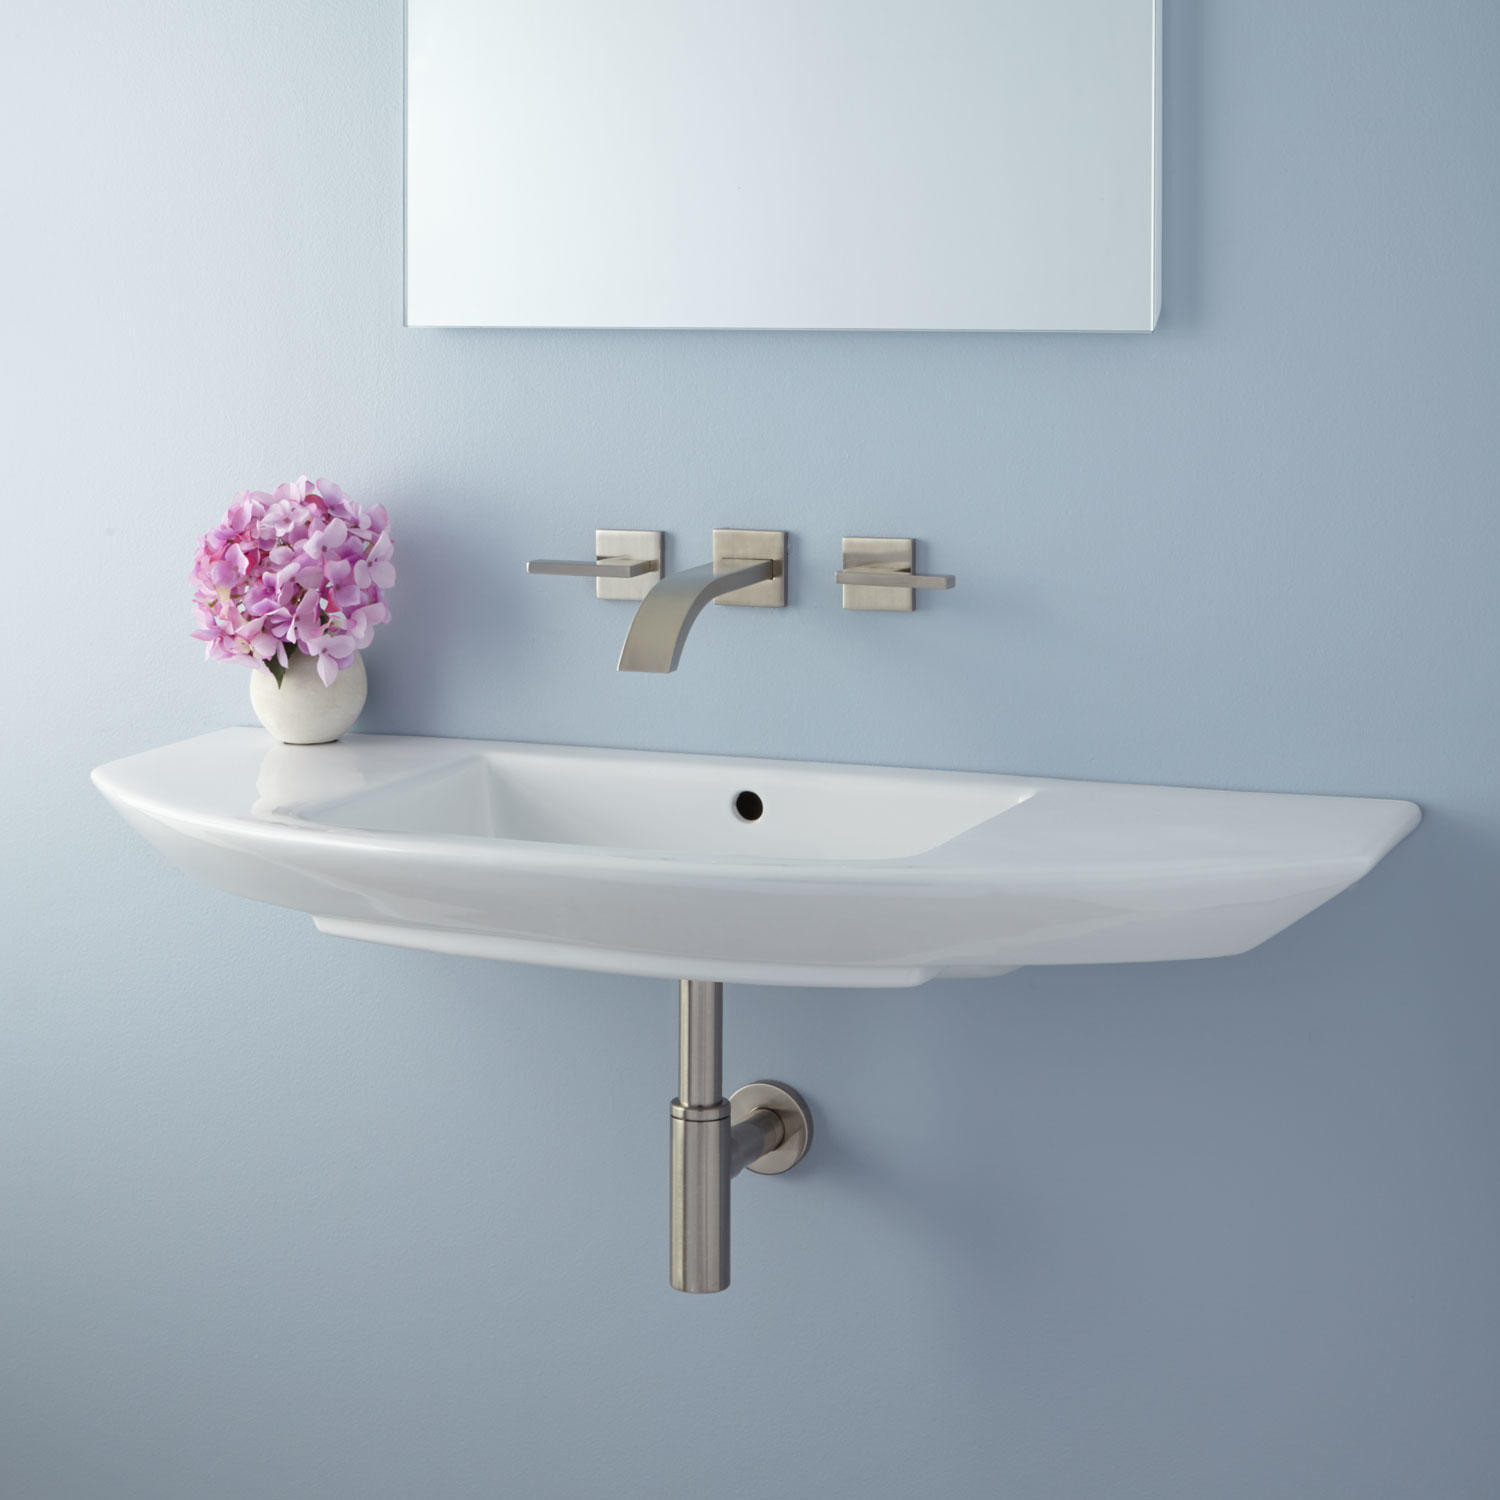 Best ideas about Small Bathroom Sink . Save or Pin Finola Mini Wall Mount Sink Bathroom Now.